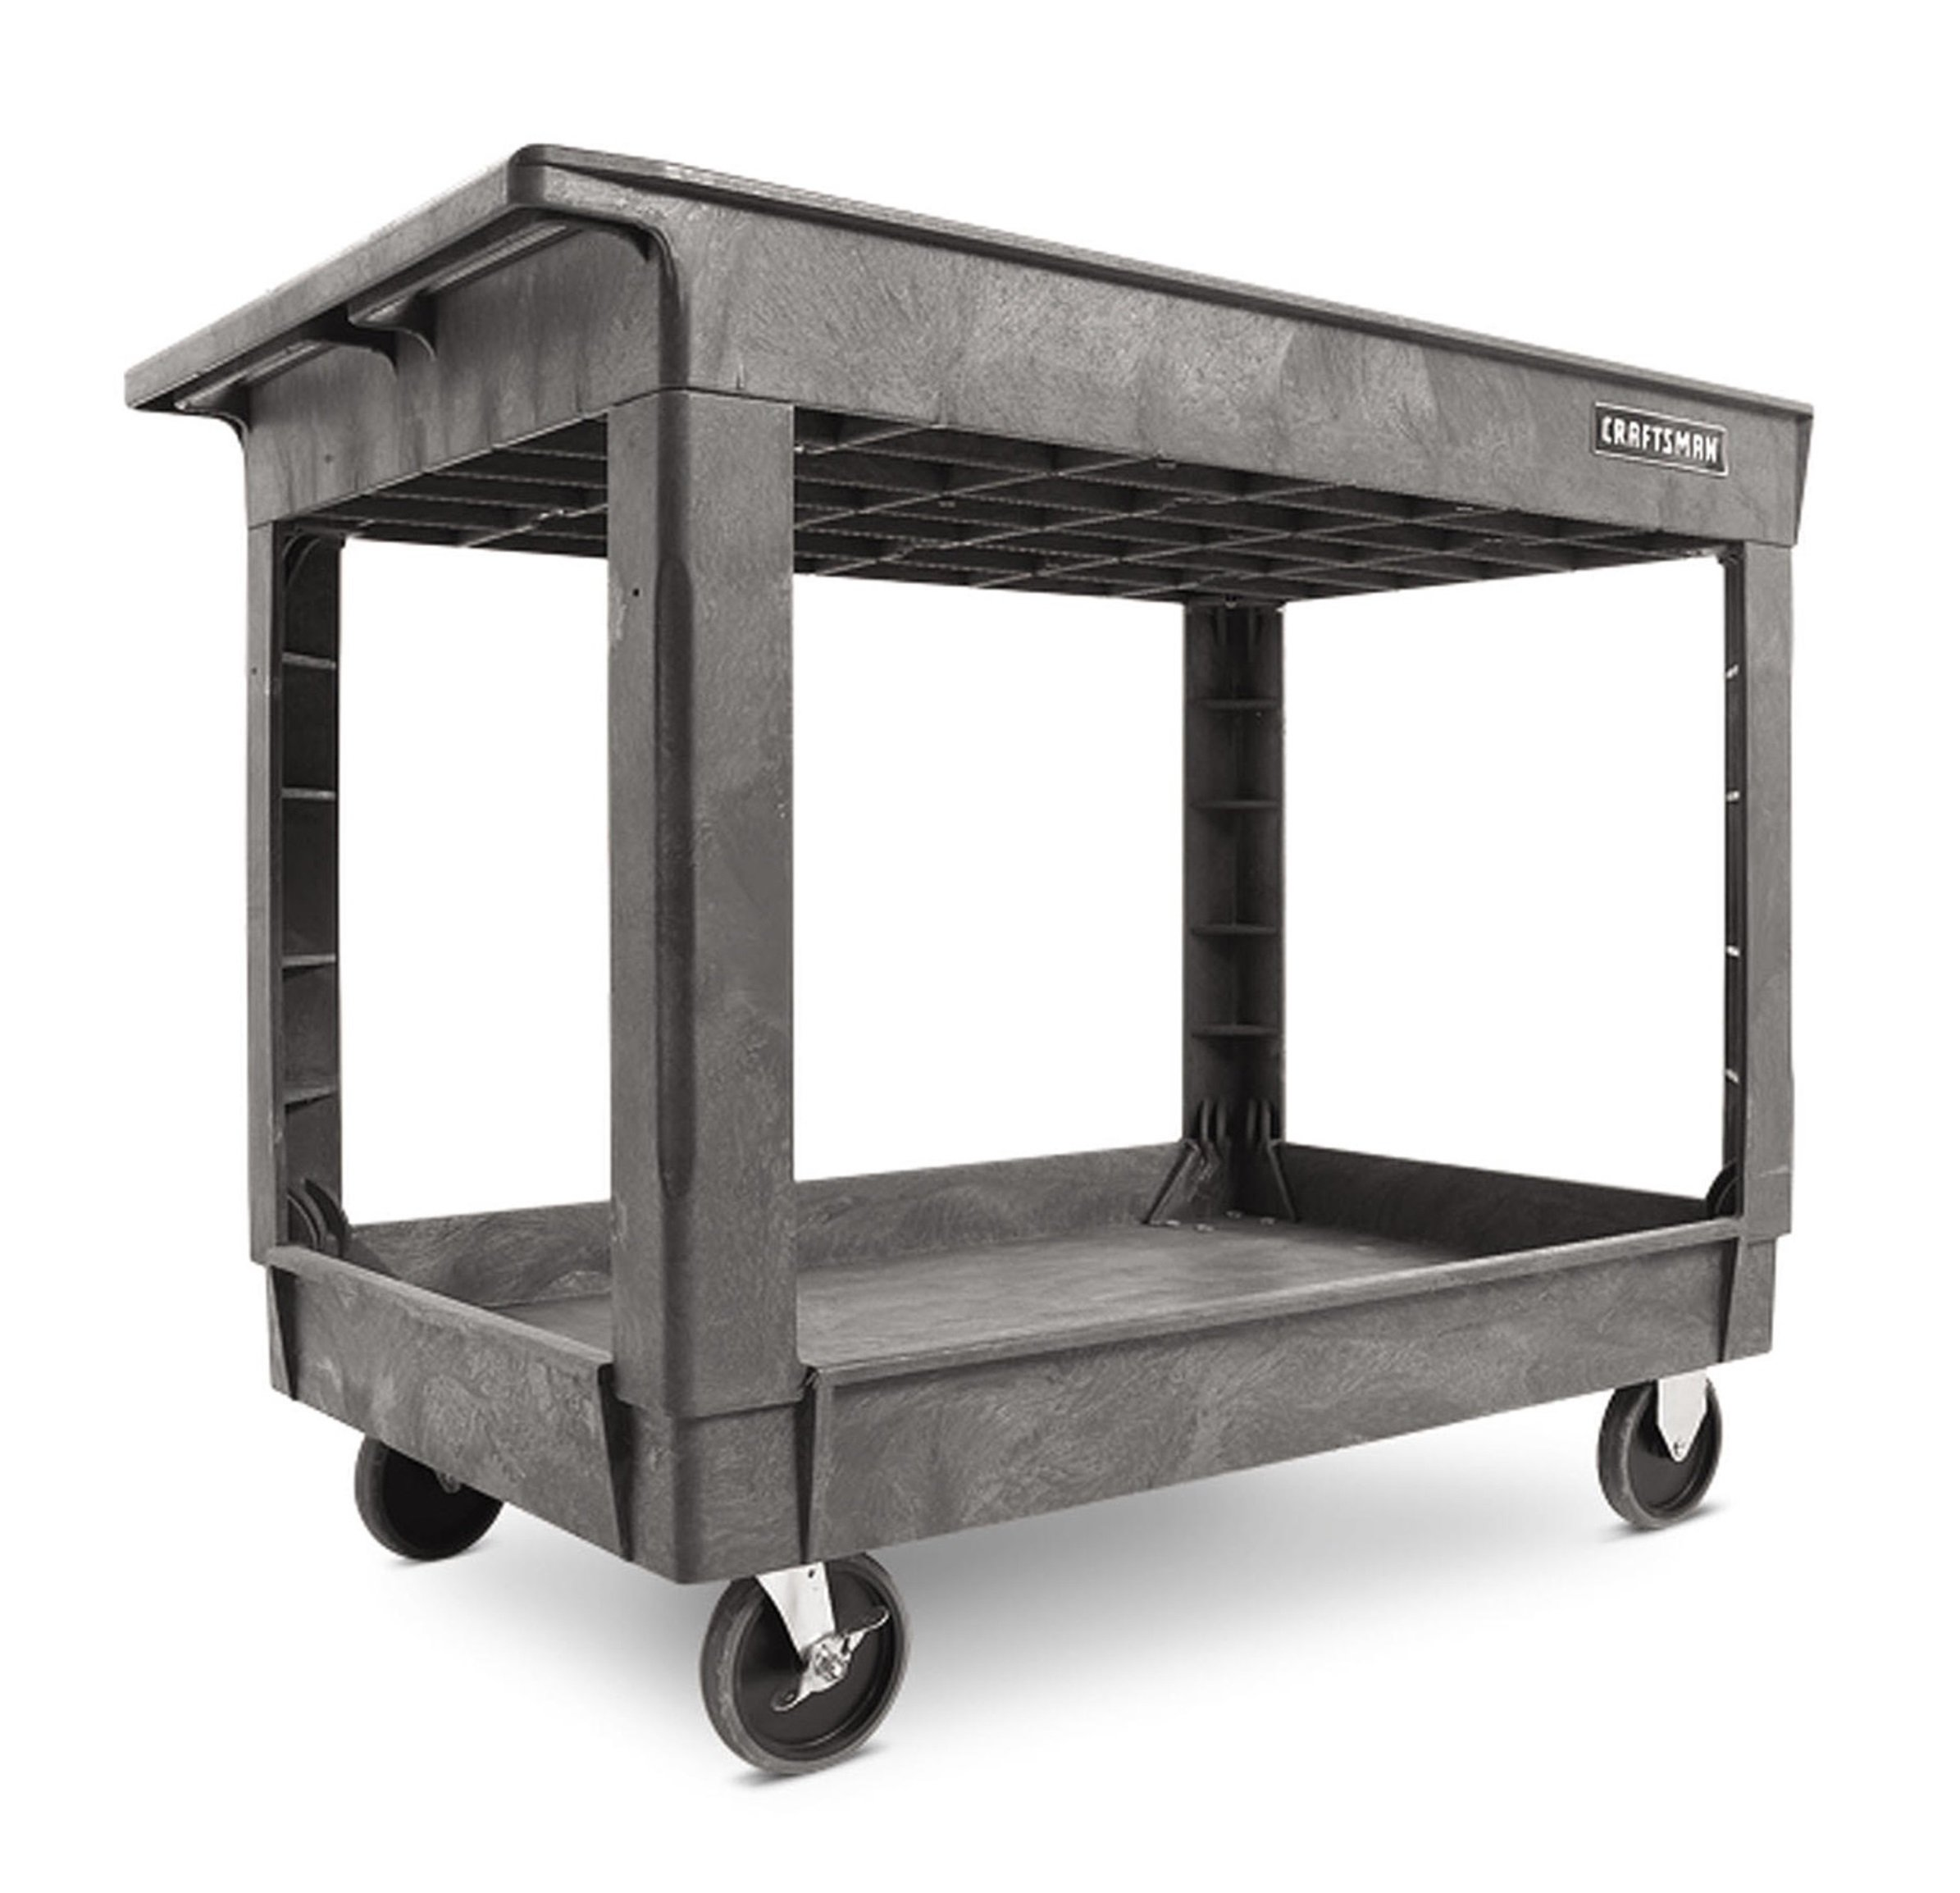 Work Bench Mobile Tool Cart by MM (Image #3)